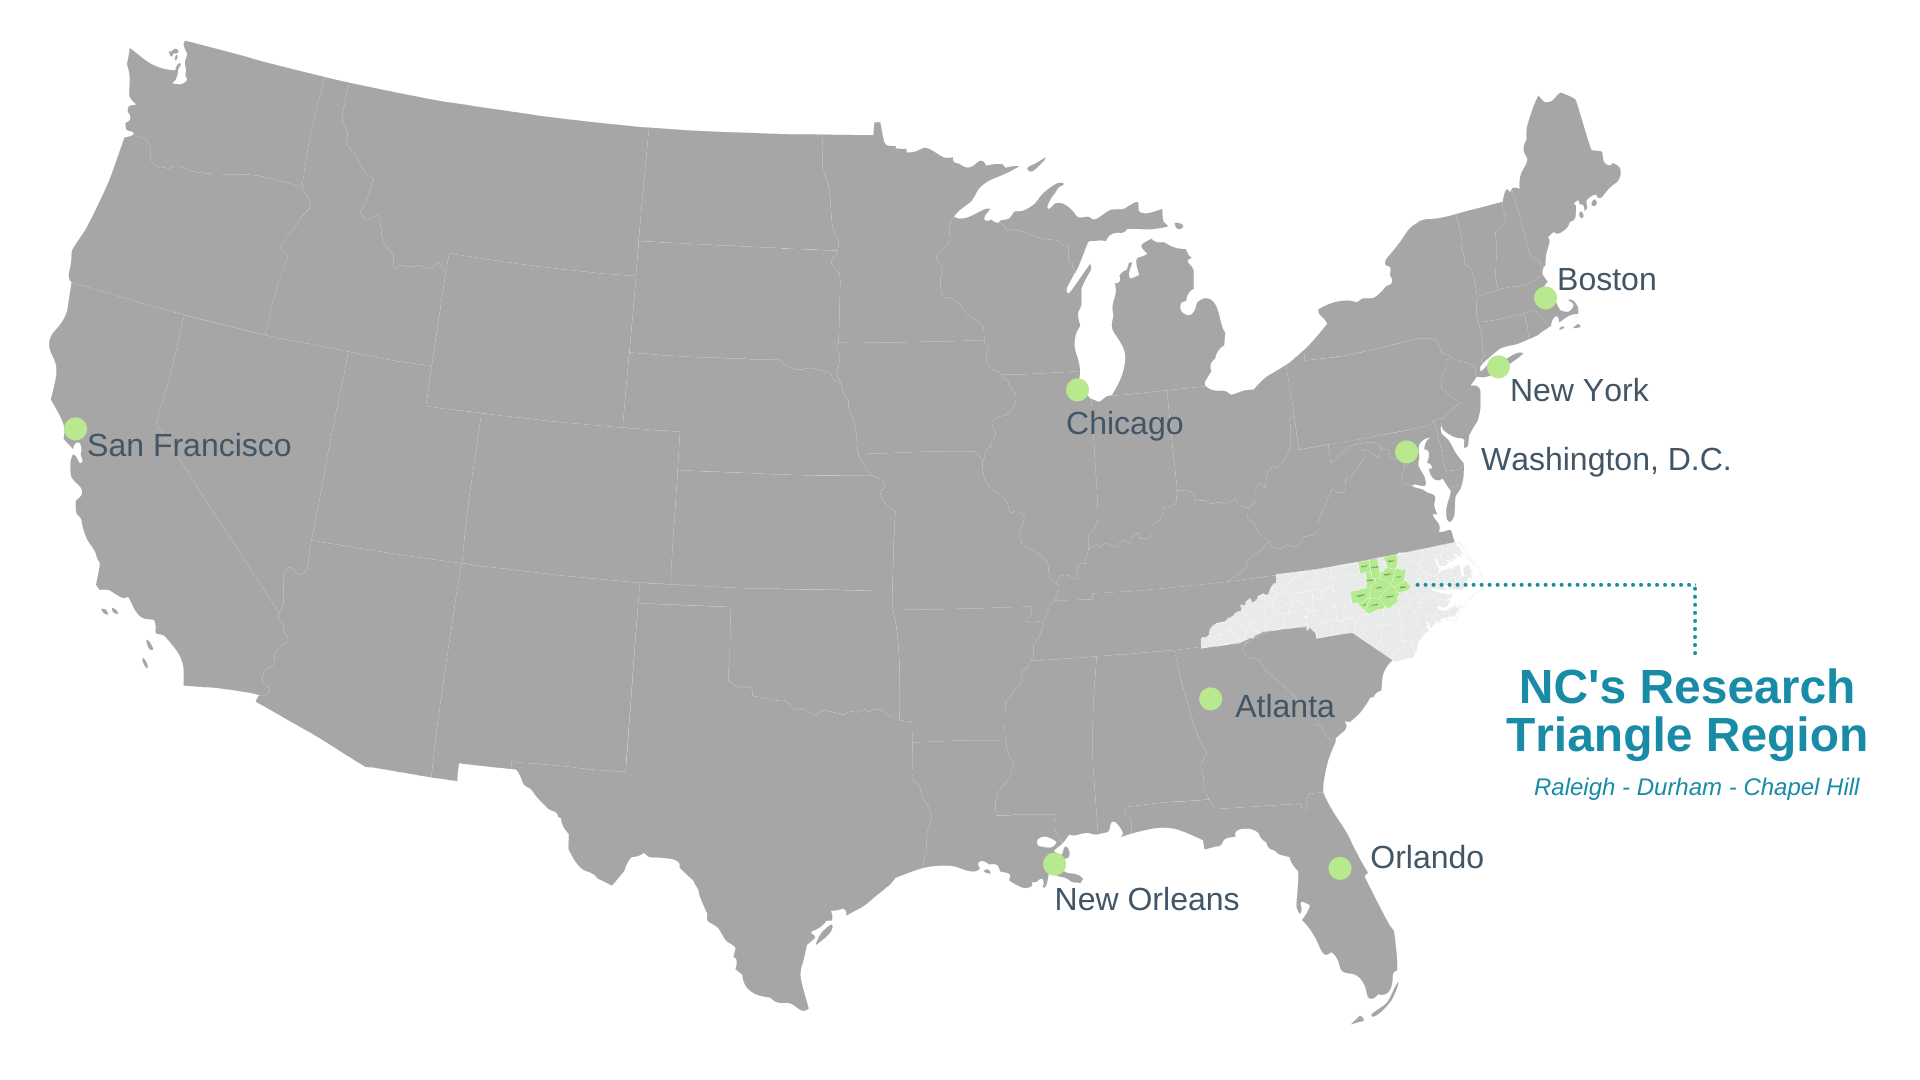 A map of the United States highlighting the location of NC's Research Triangle Region. The map highlights cities on the east coast and RTRP is located between Washington D.C. and Atlanta, Georgia.